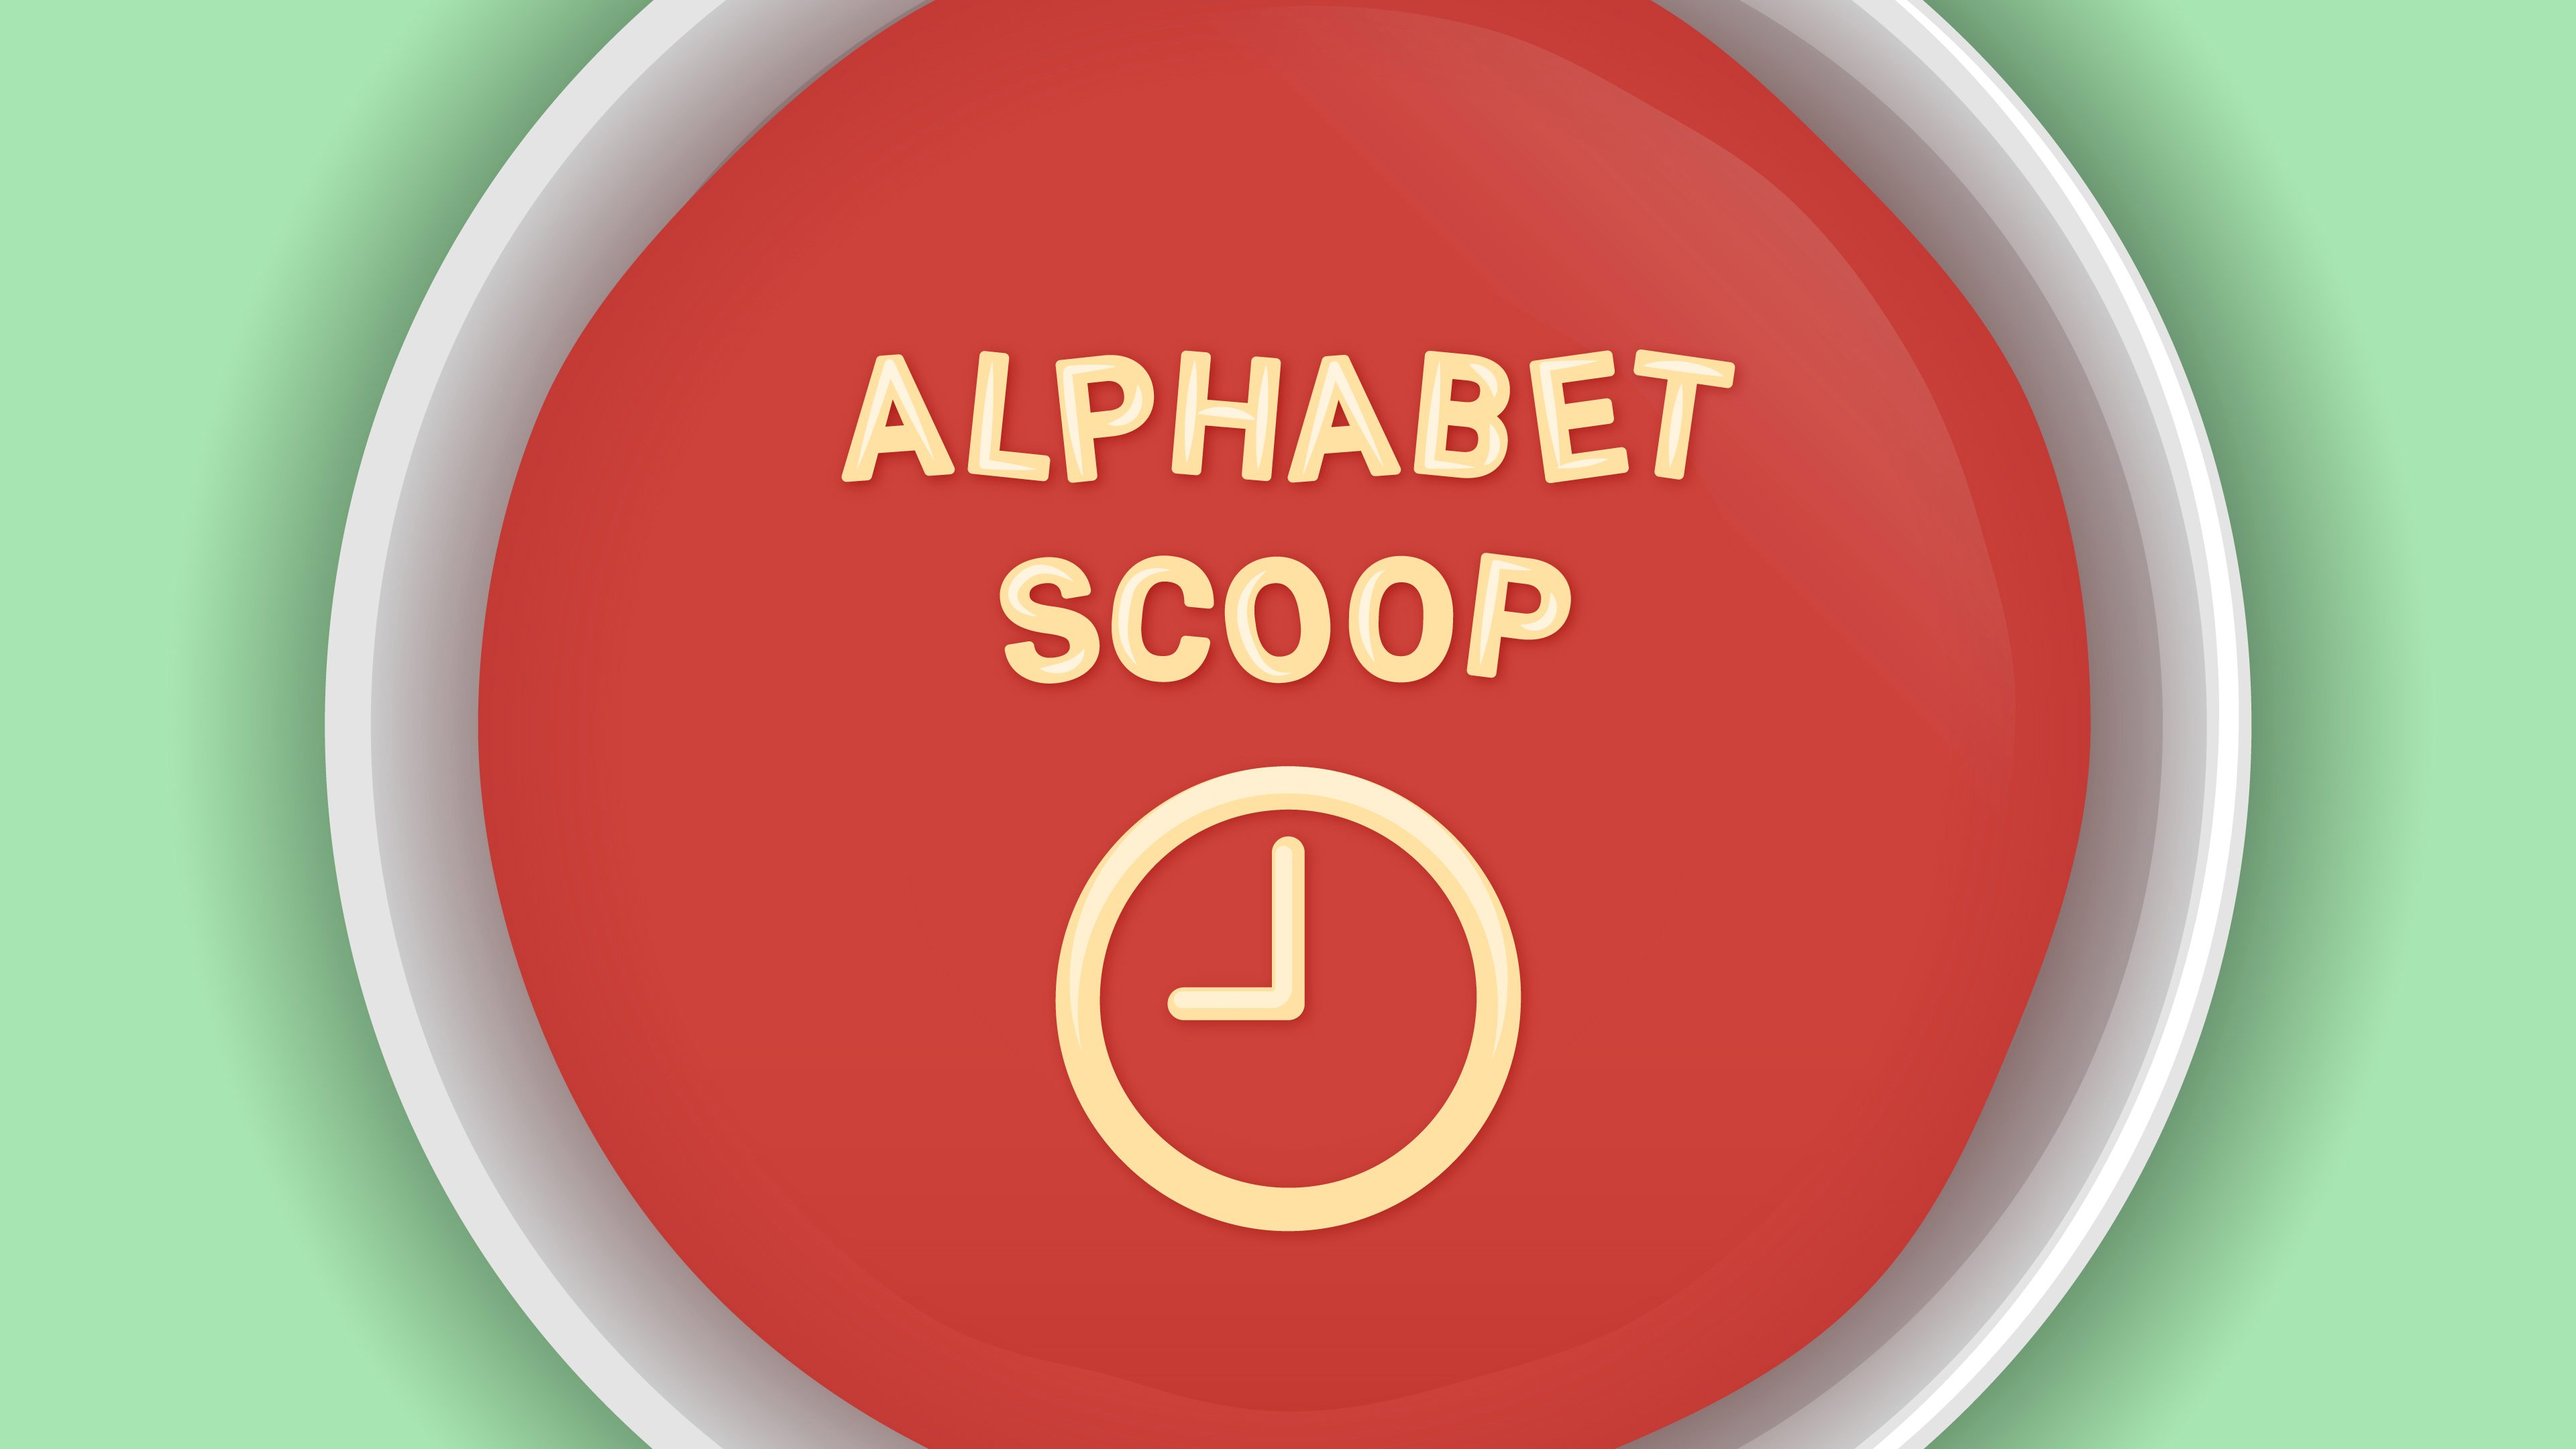 Alphabet Scoop 040: Google I/O 2019 misadventures, Gmail redesign, Screenwise controversy